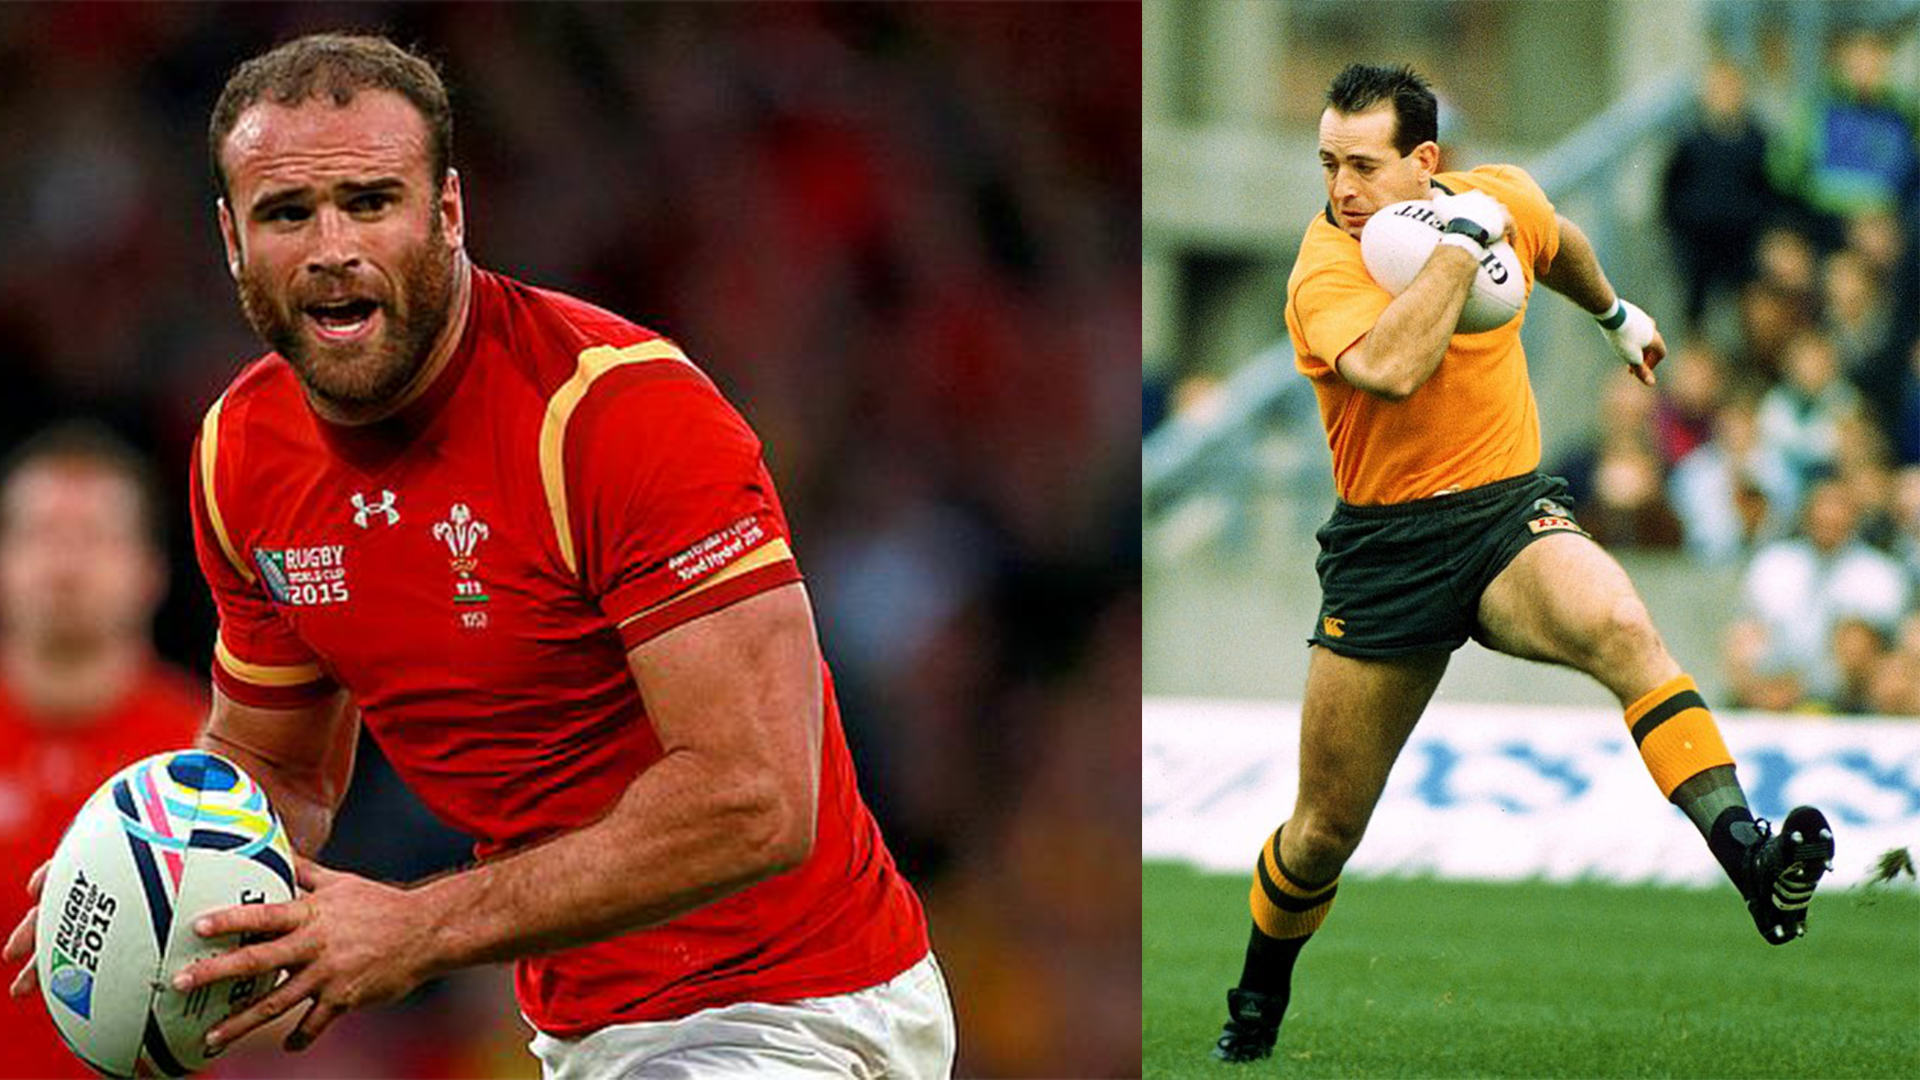 Charity Legends Lunch with David Campese and Jamie Roberts